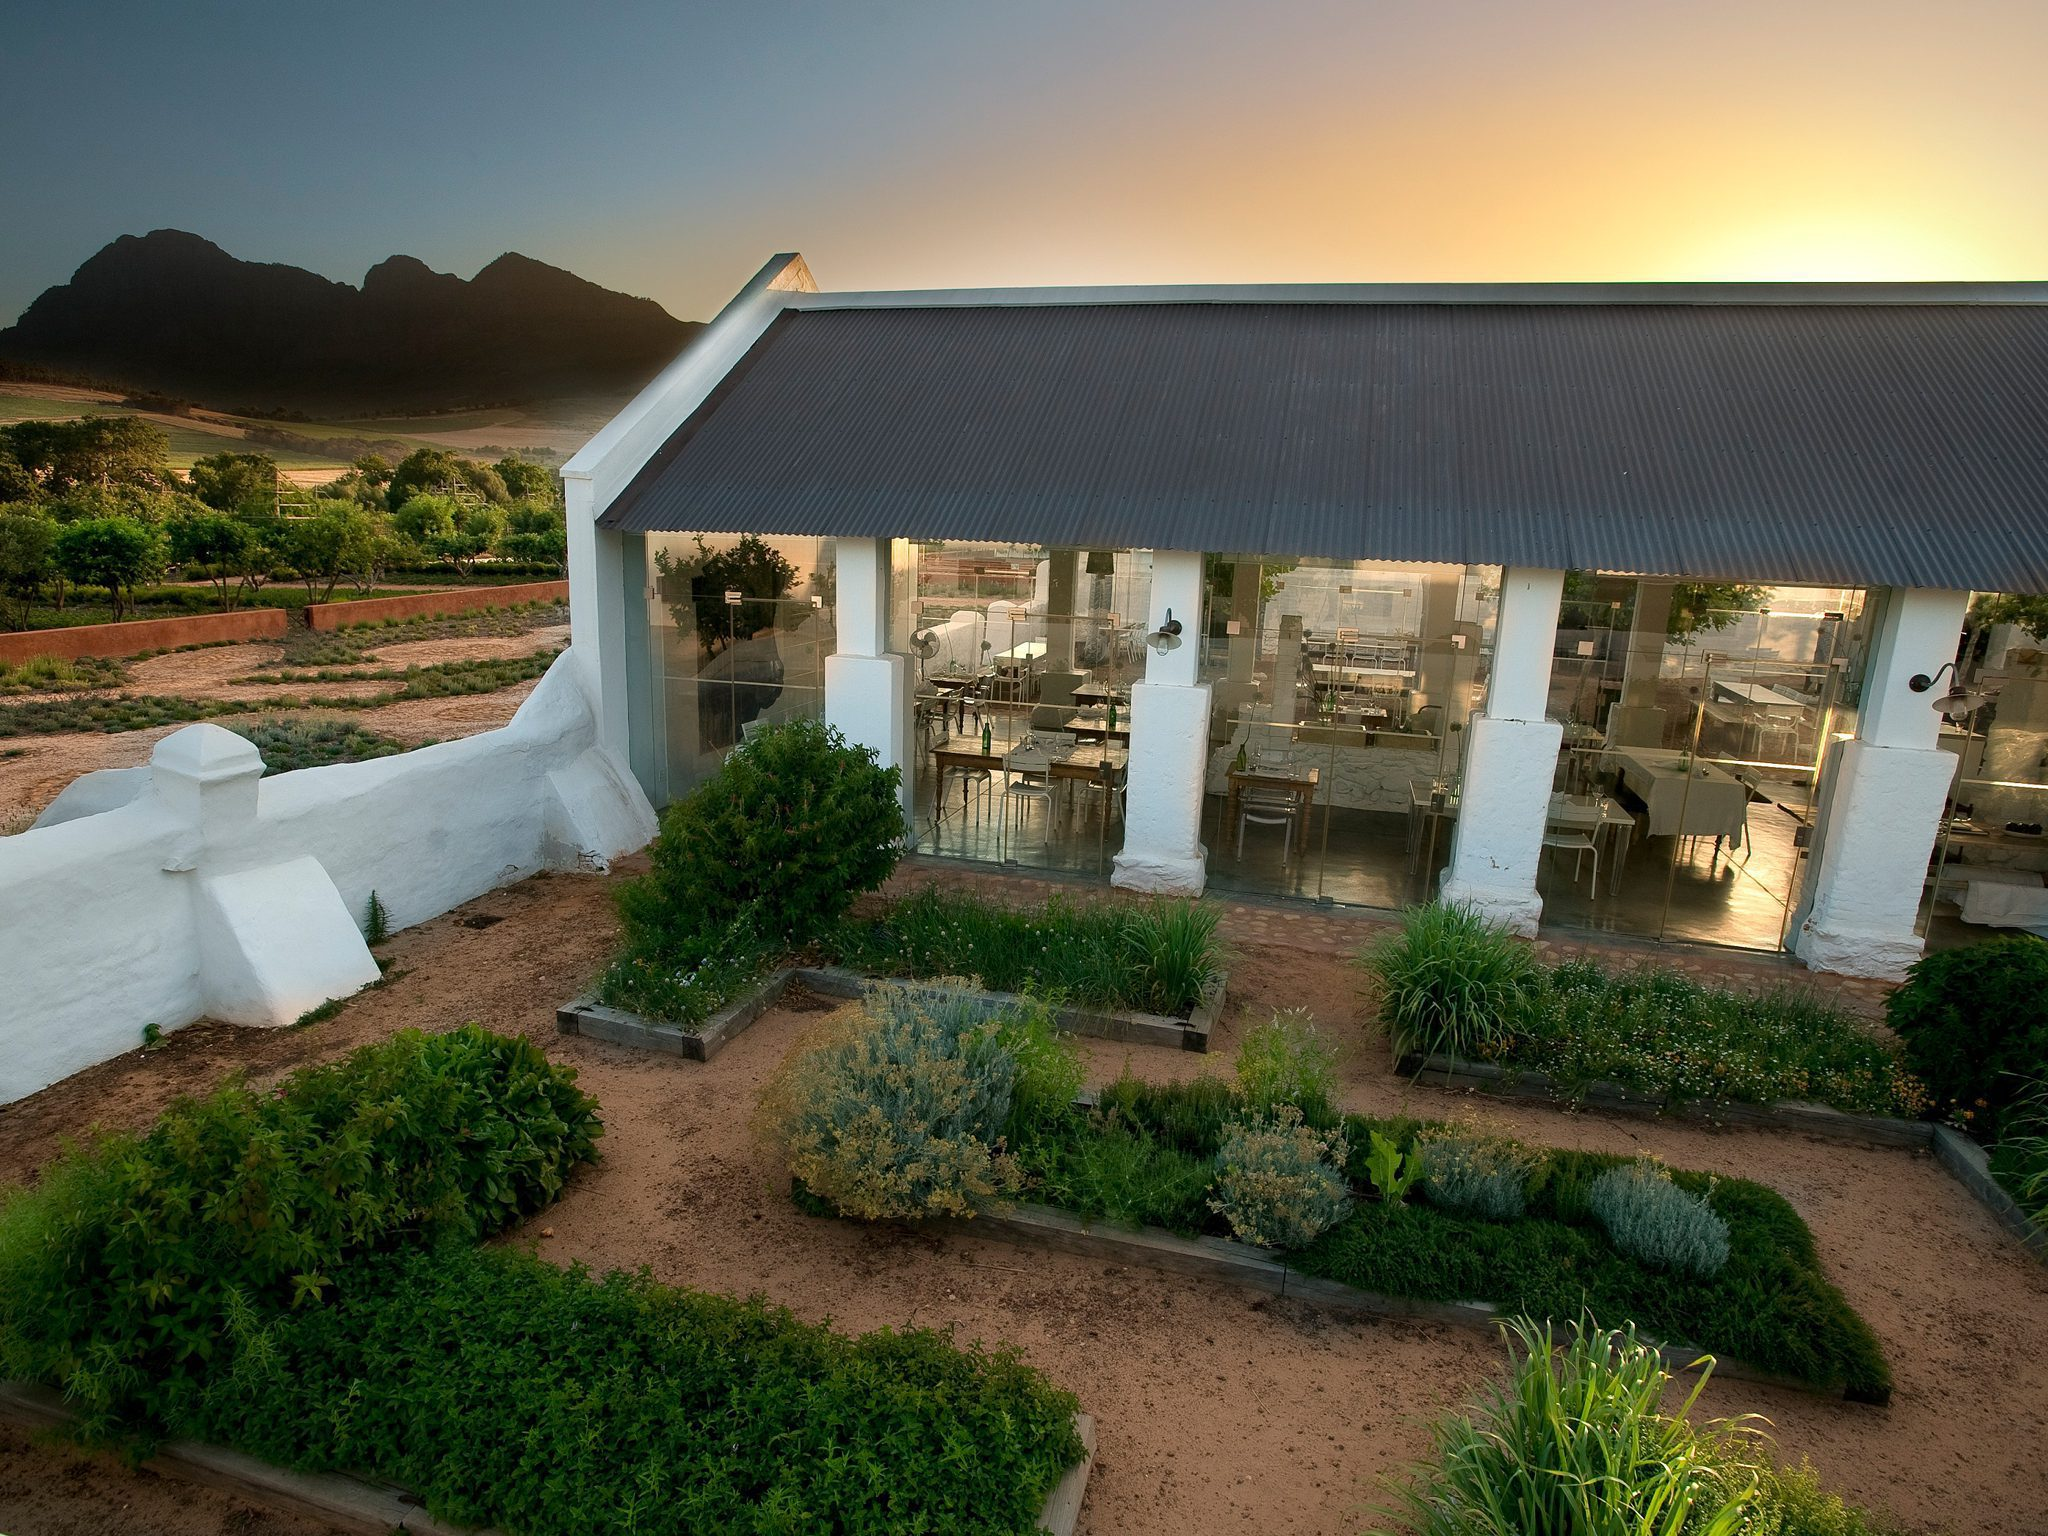 pretty orange and yellow sunset as the backdrop of the main exterior dining room at babel in the winelands